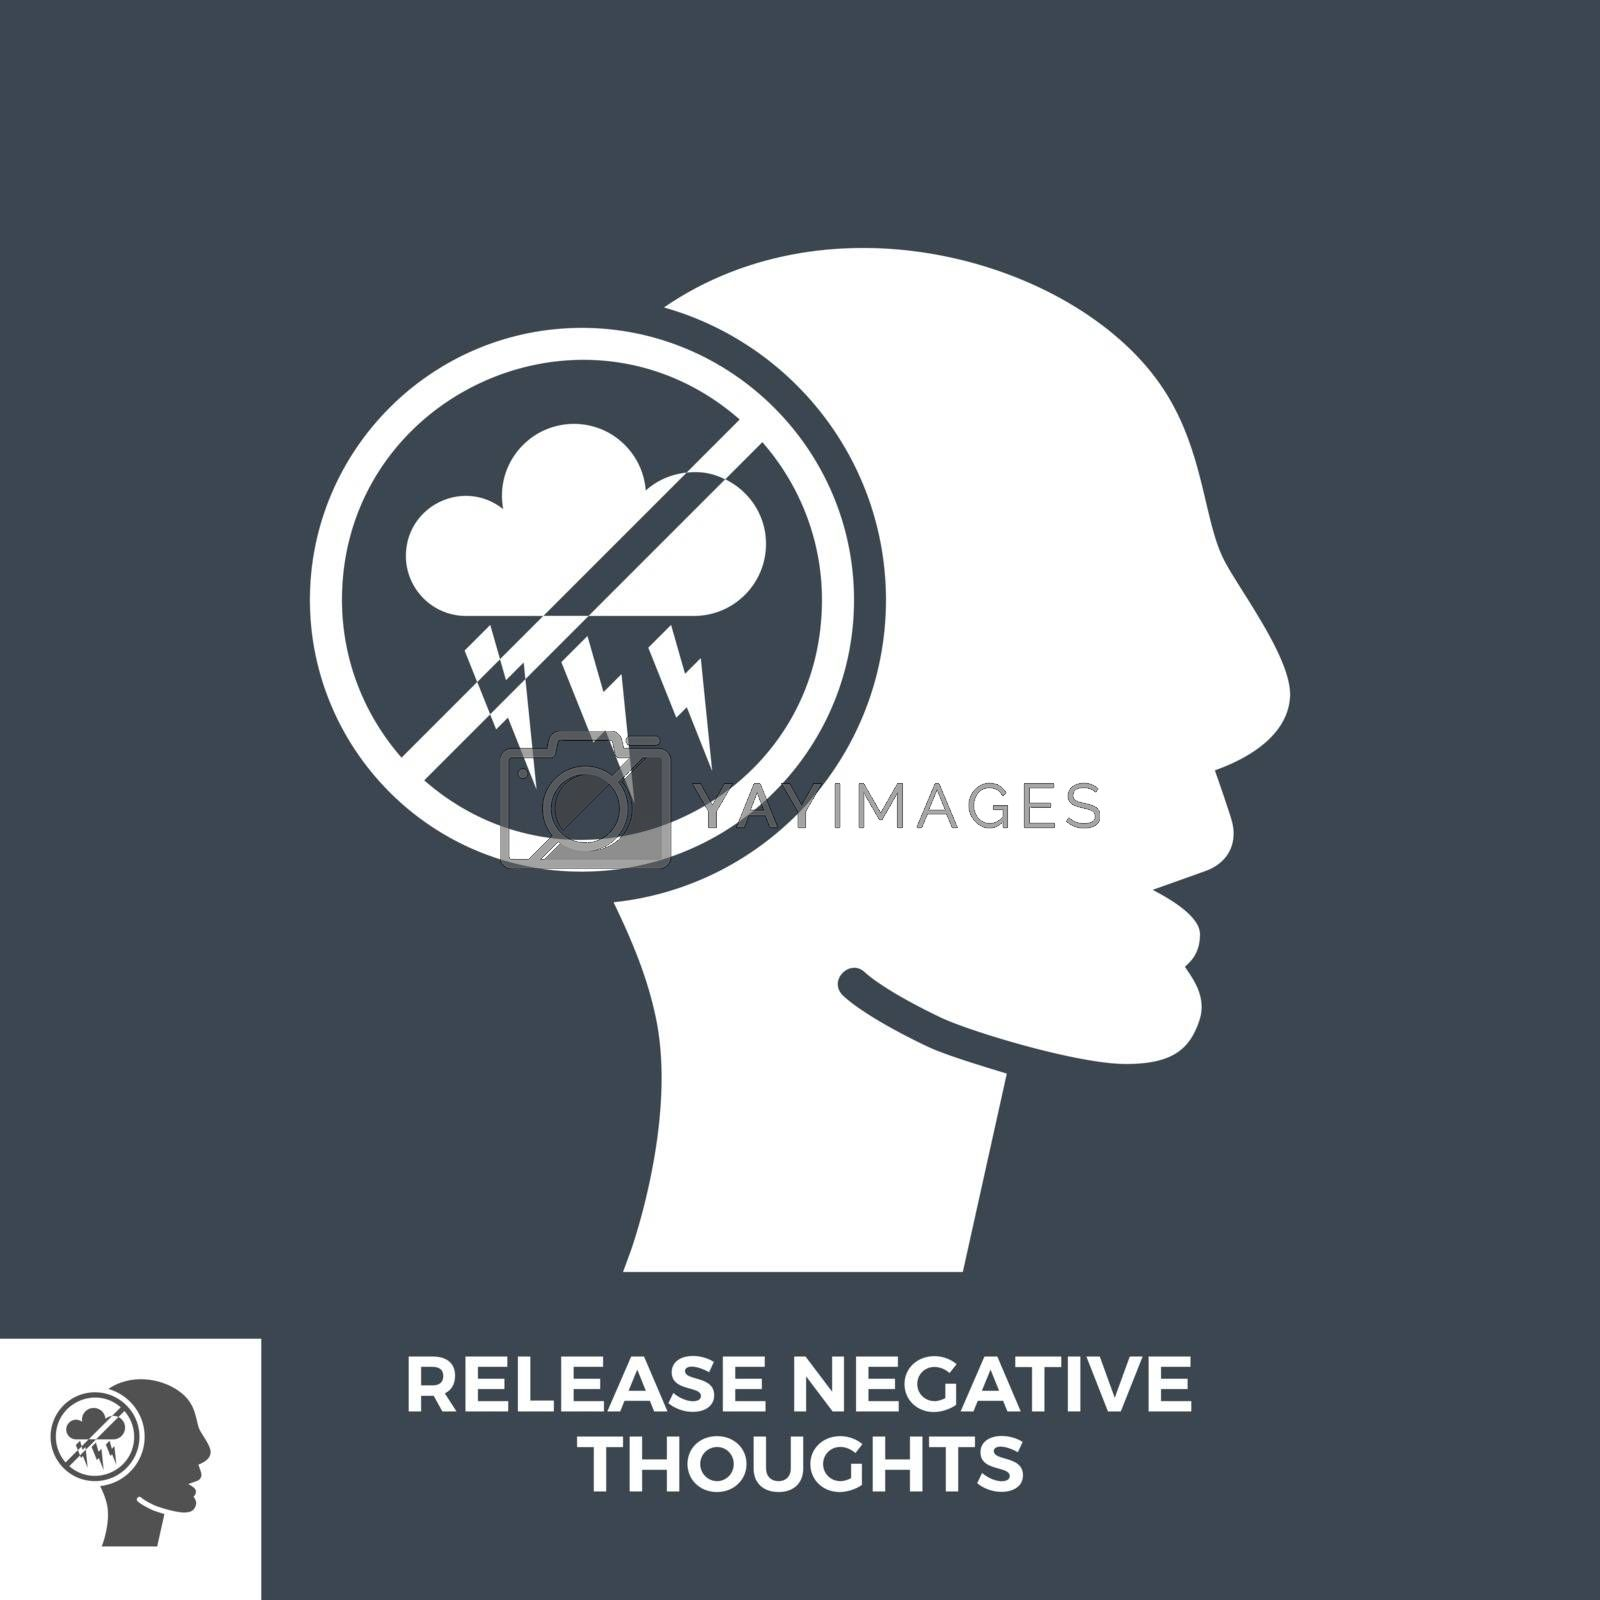 Release Negative Thoughts Glyph Vector Icon Isolated on the Black Background.